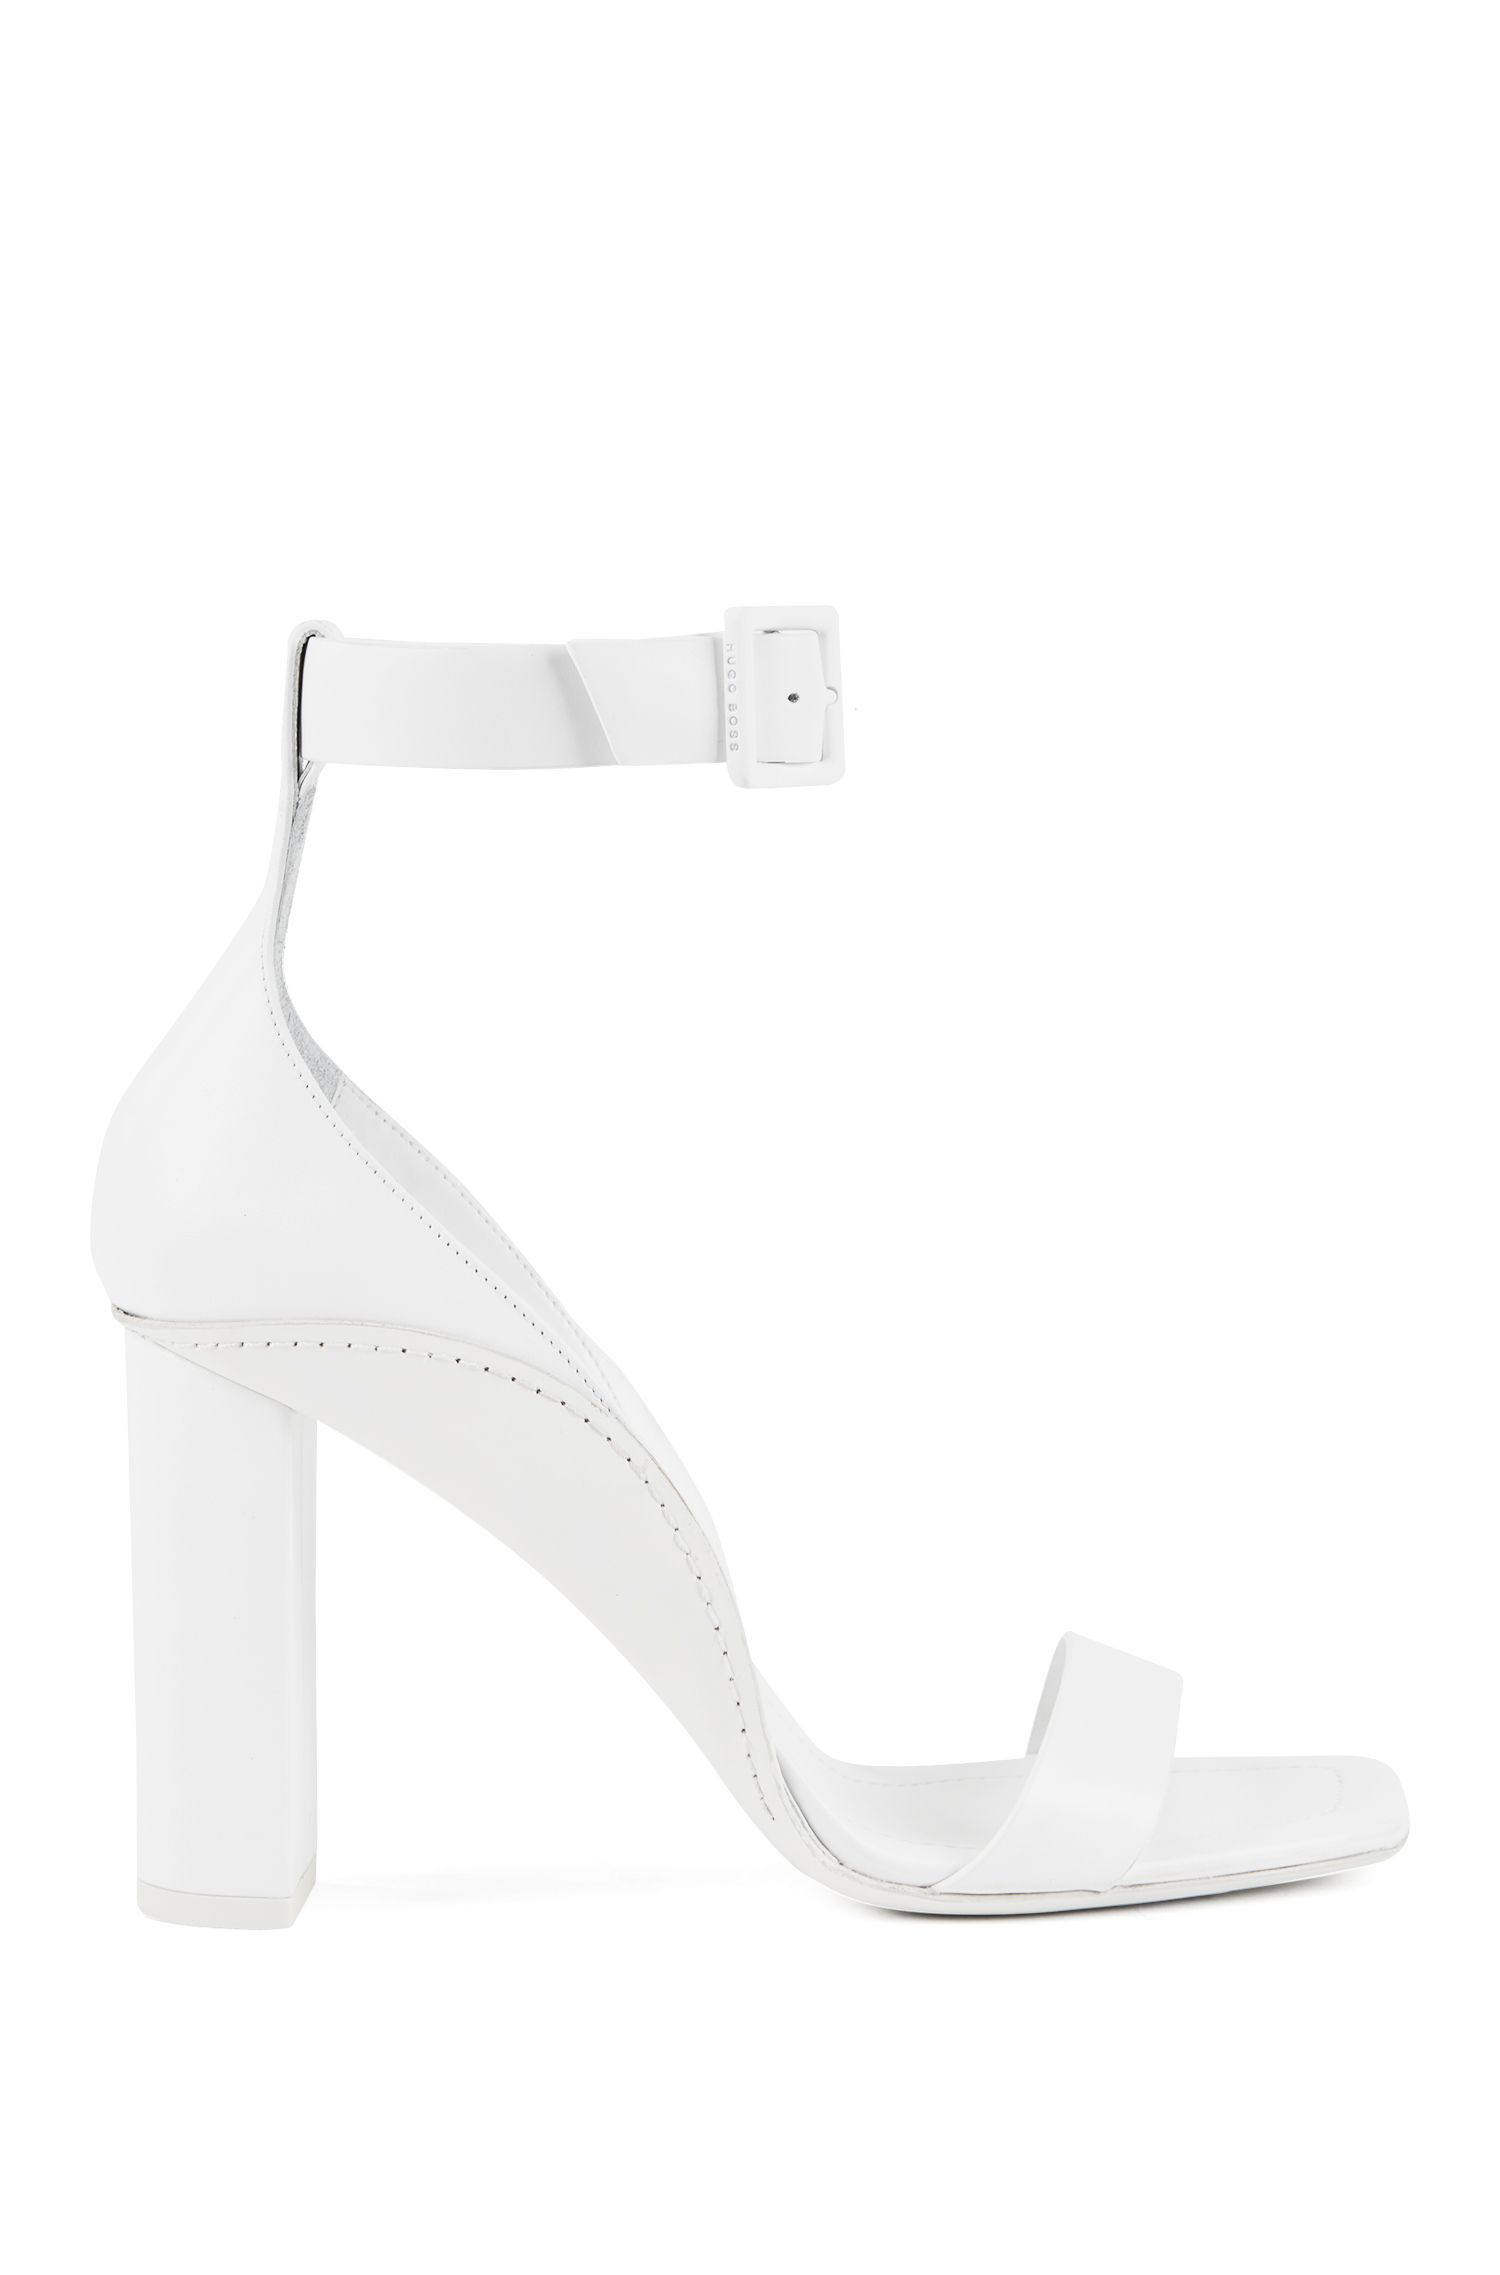 Block-heel sandals in Italian calf leather with ankle strap, White